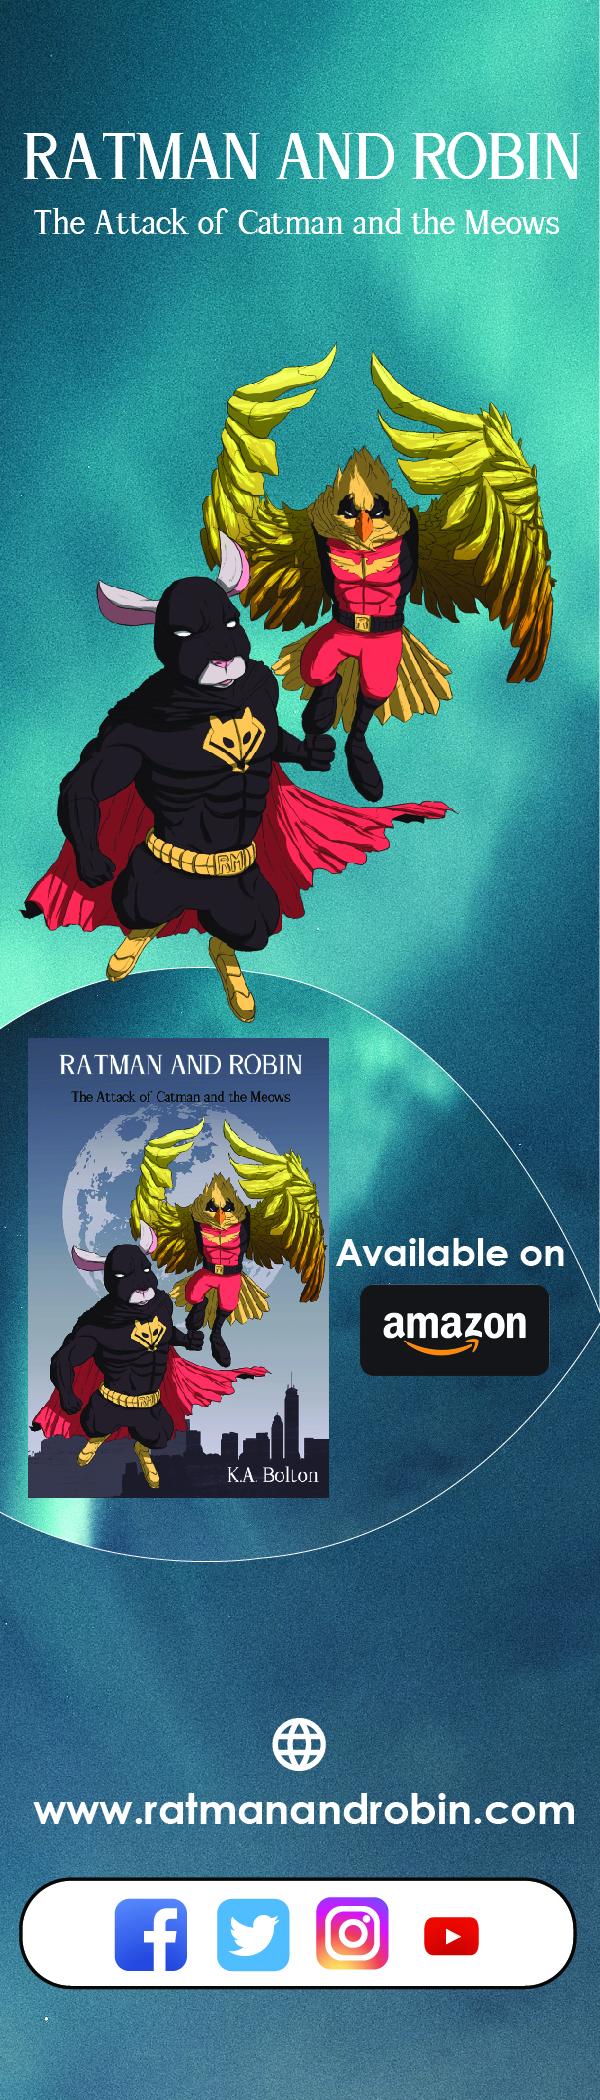 Free ratman and robin Bookmark - Front side